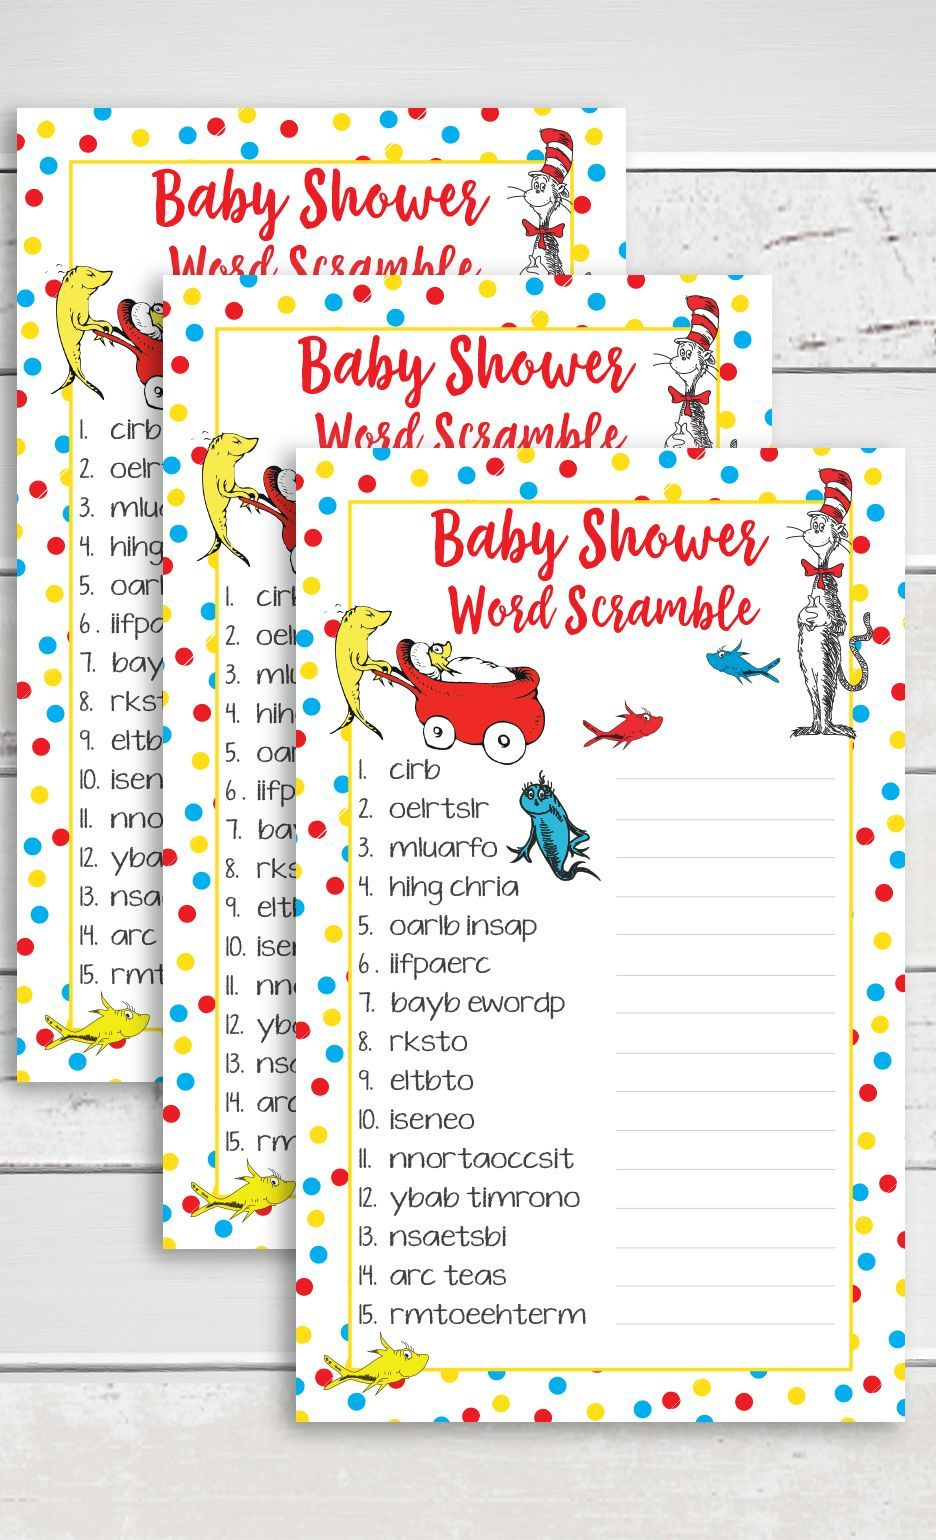 Dr Seuss Baby Shower Game, Word Scramble. Rearrange The Scrambled